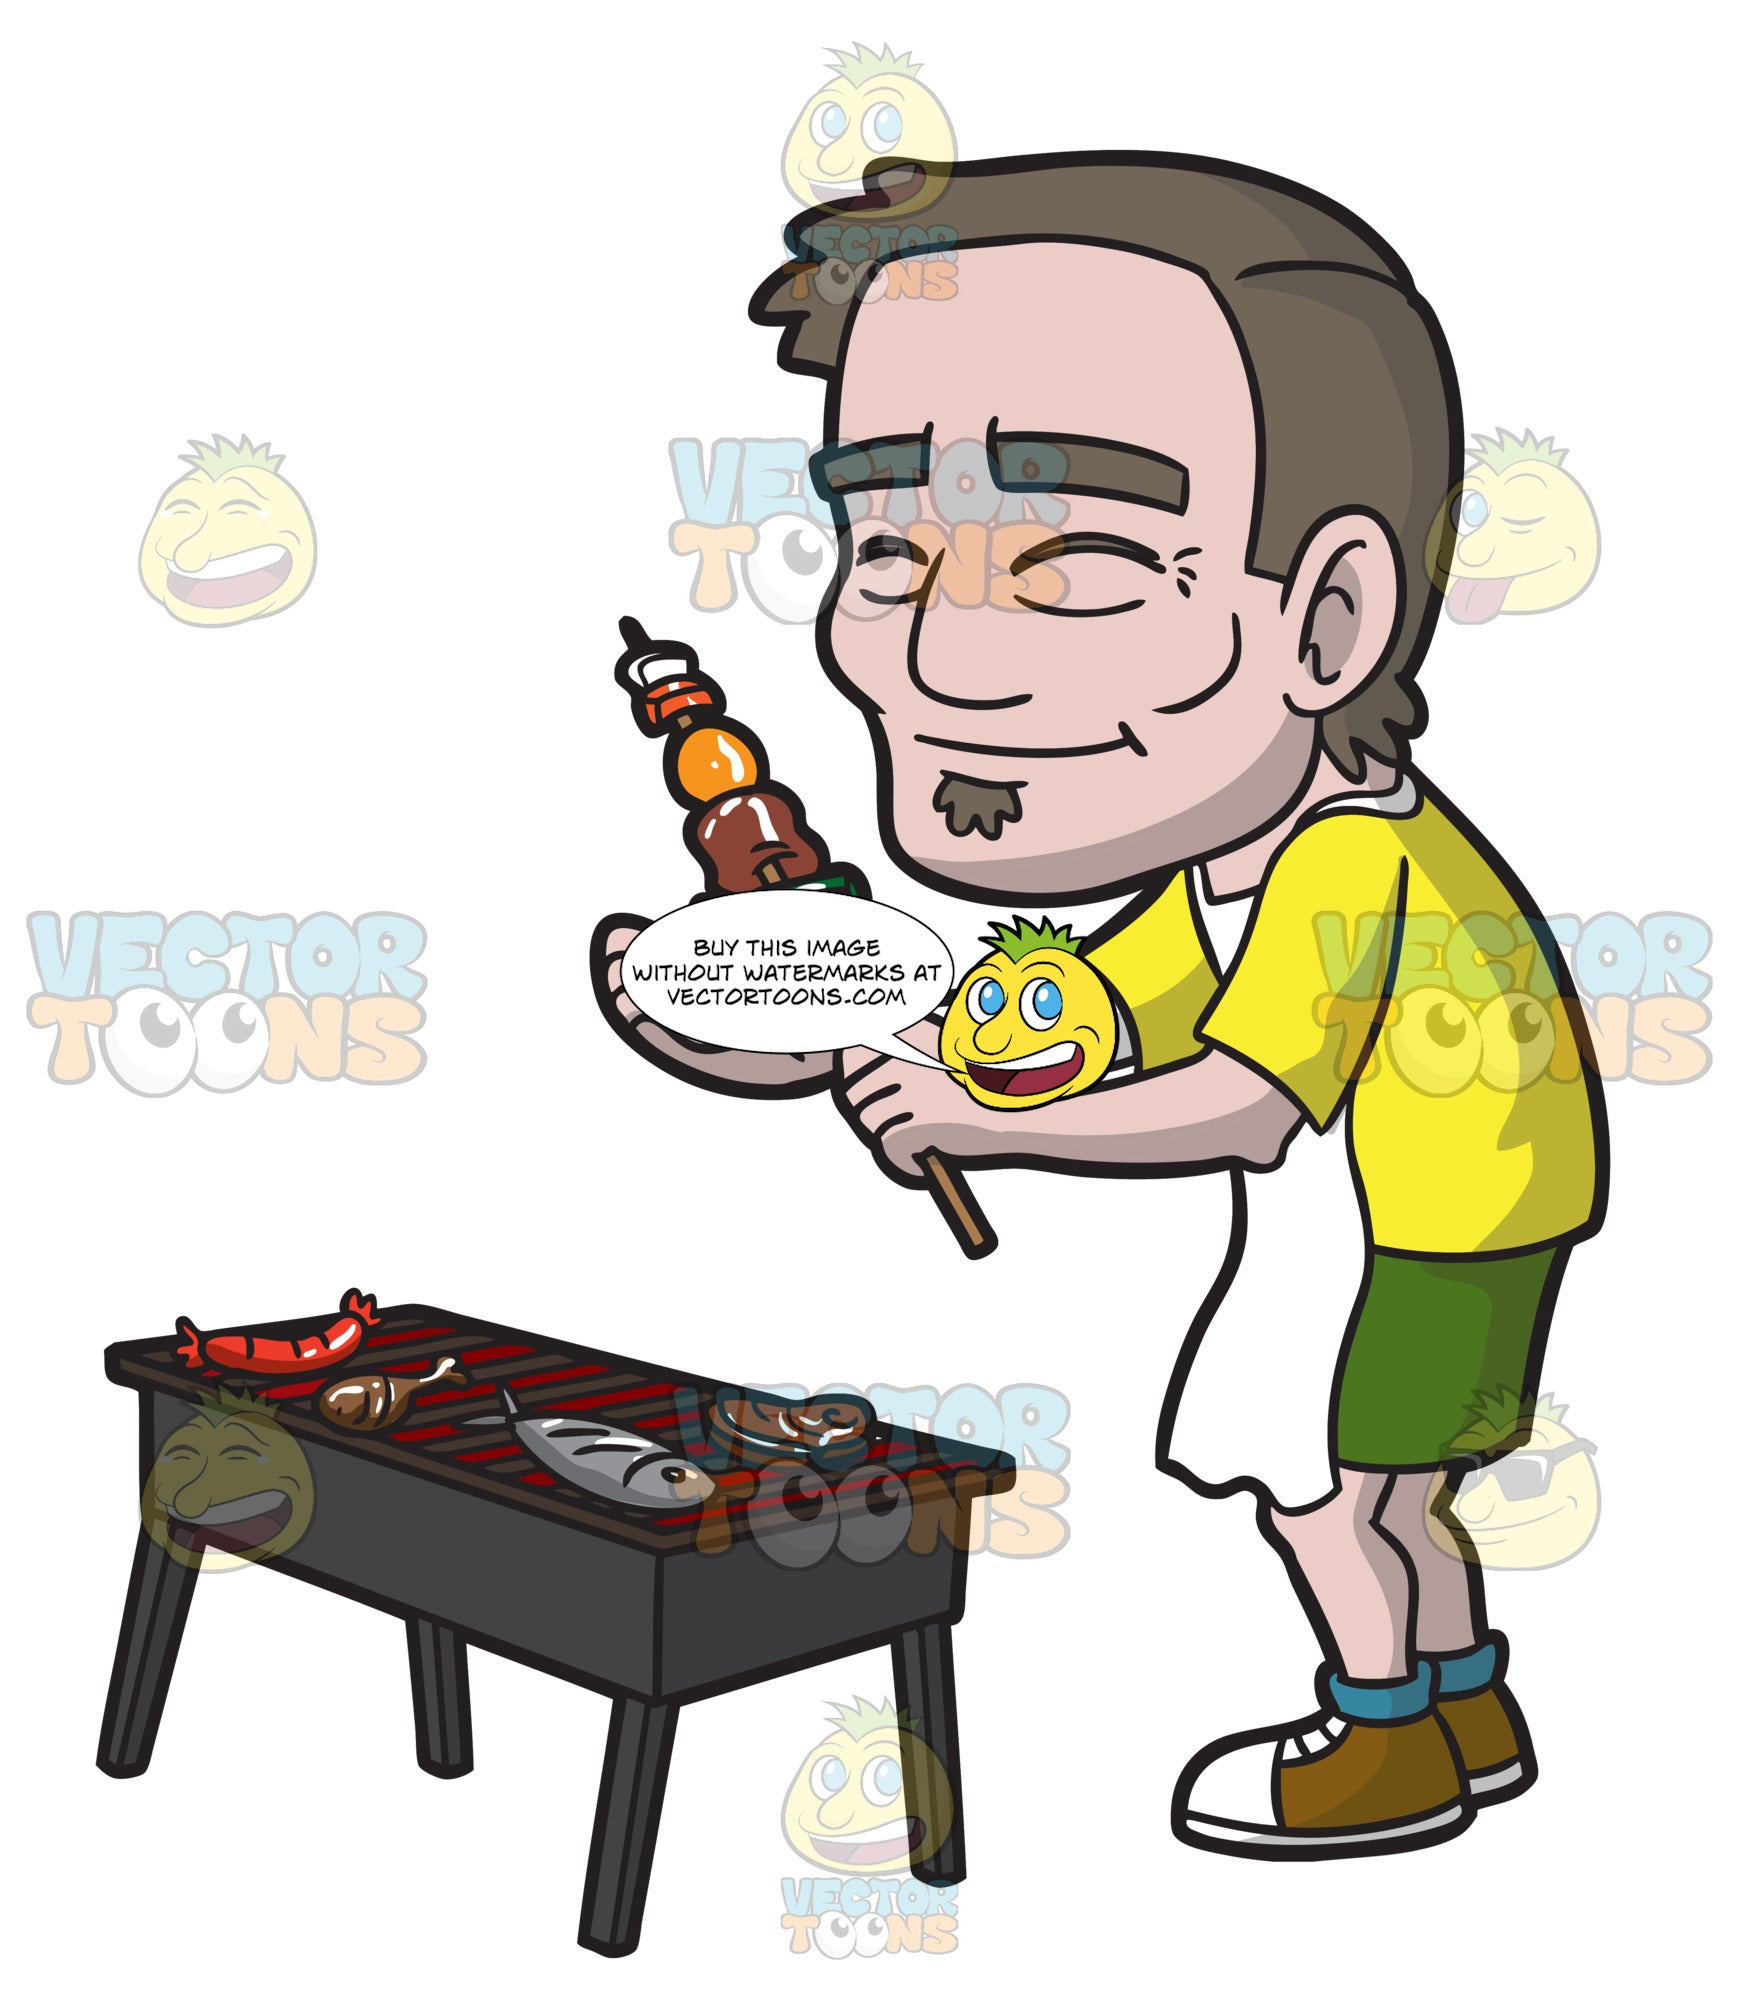 A Happy Old Man Barbecuing For A Small Party